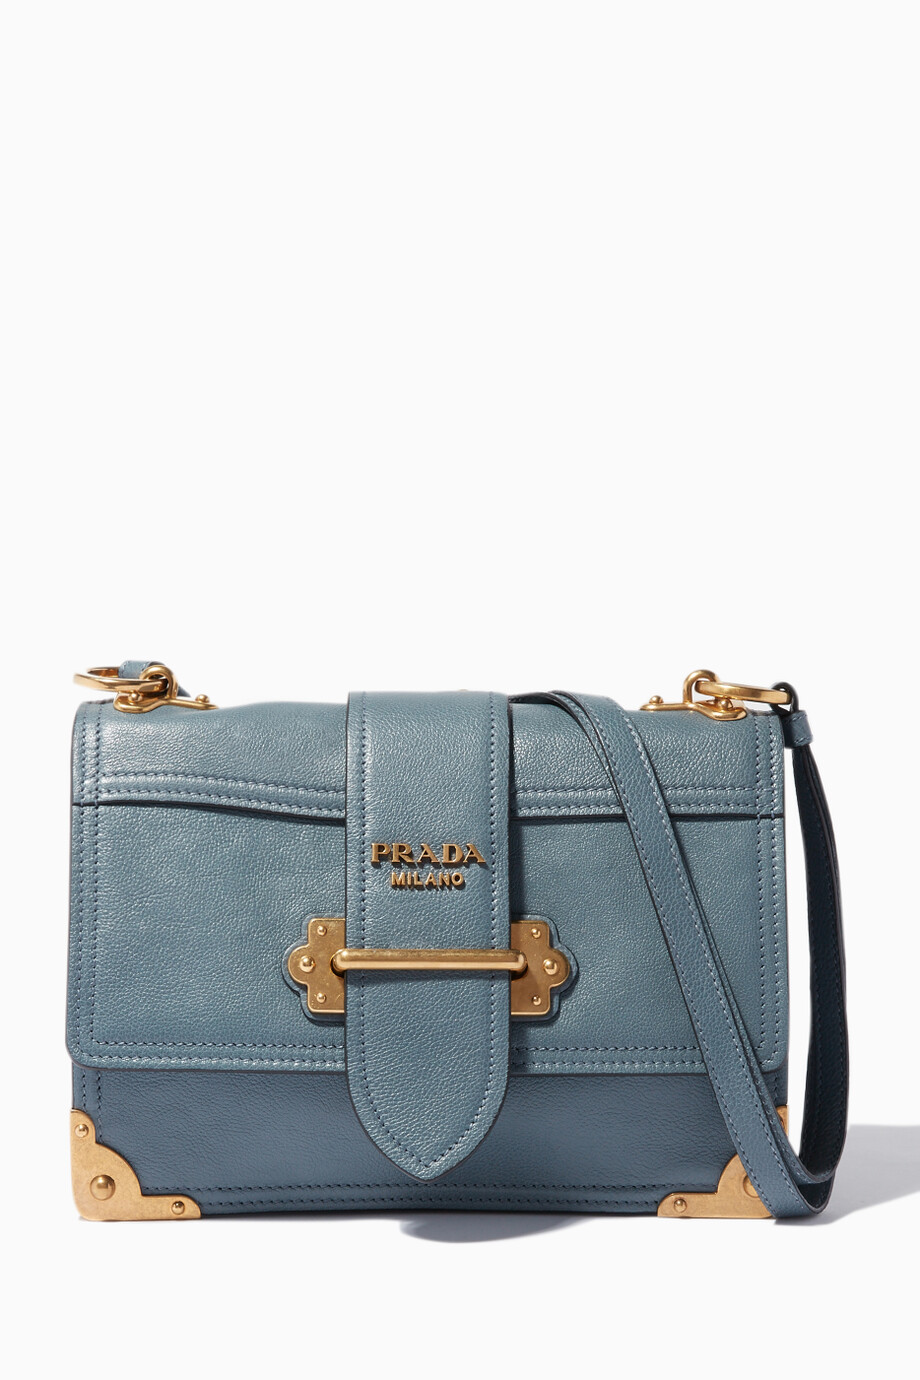 d92a7c66baff Shop Prada Blue Marine Cahier Leather Cross-Body Bag for Women ...